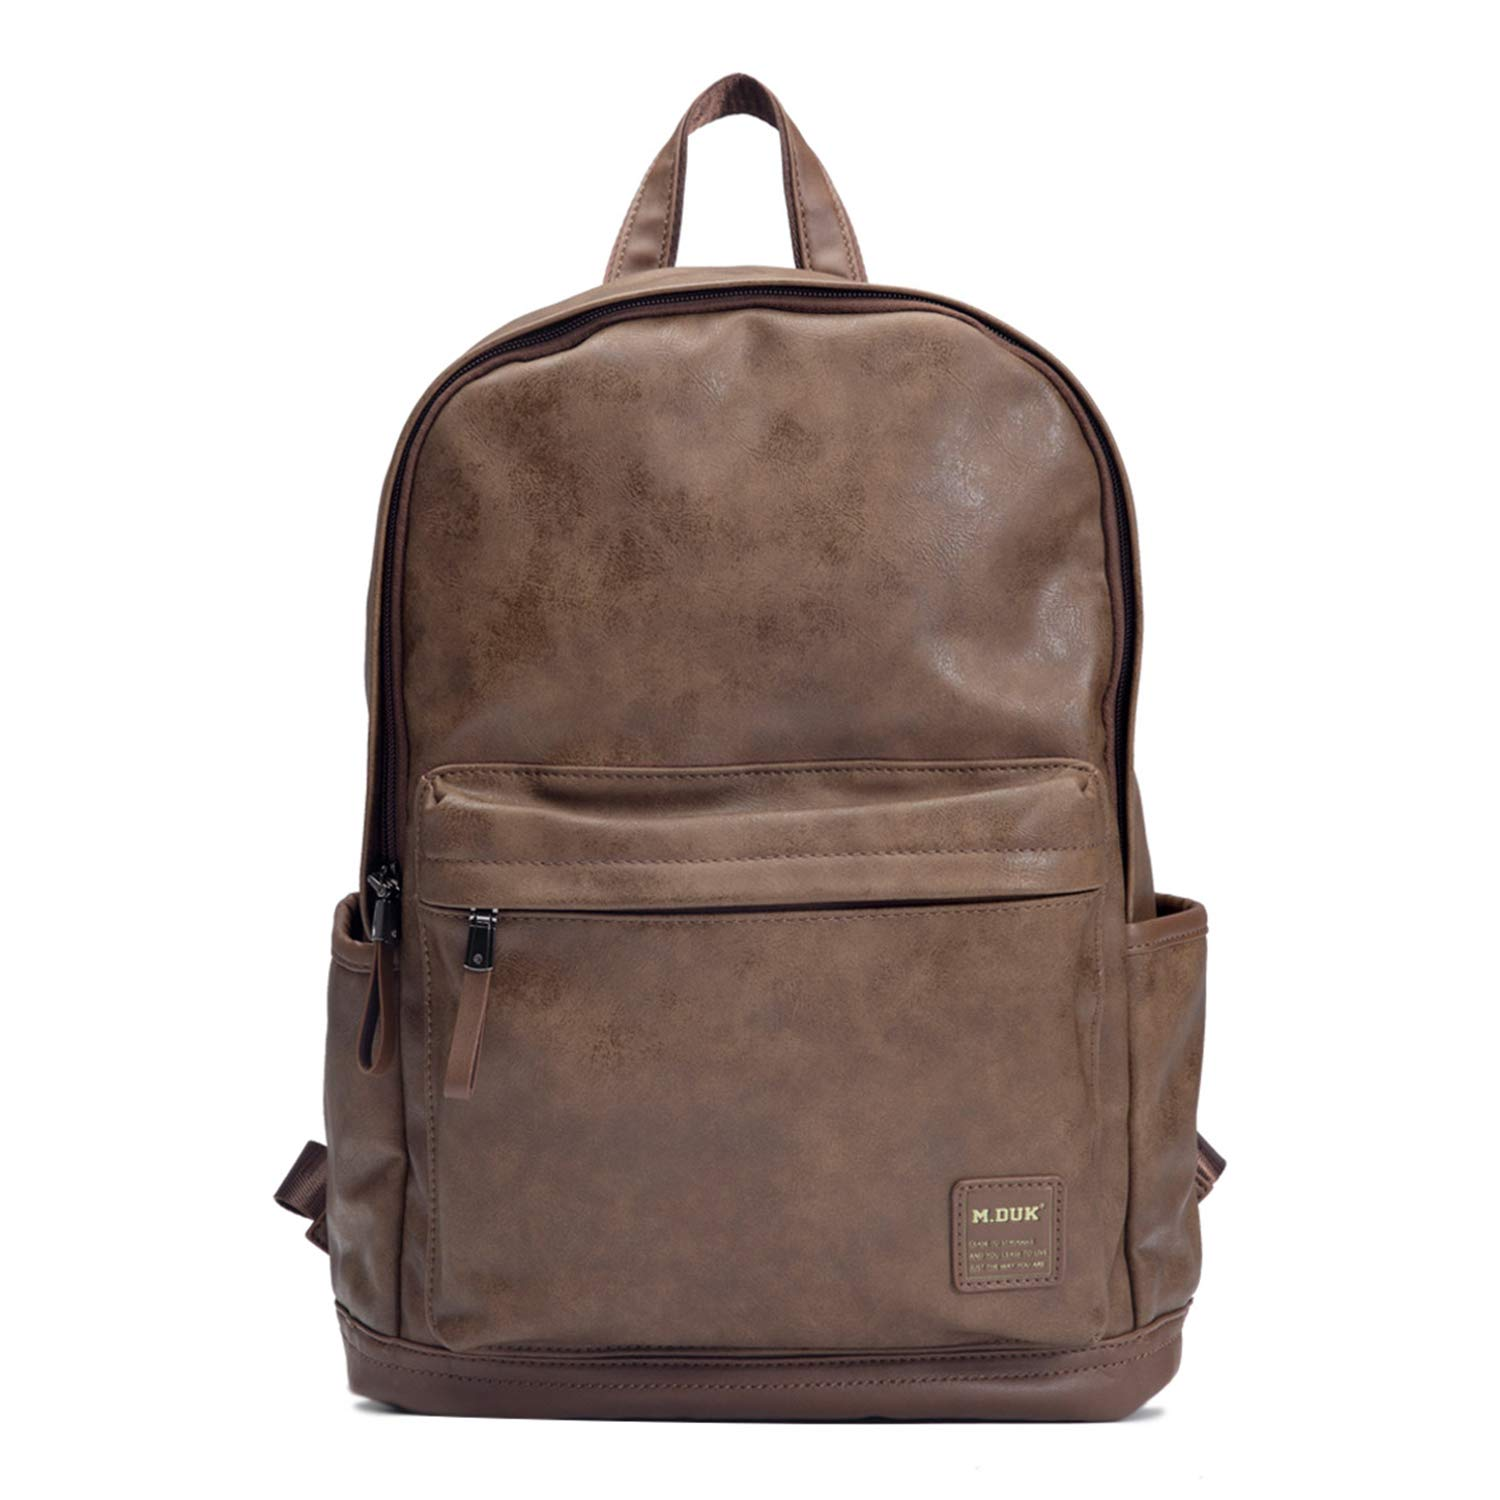 Leather Backpack, FIXM Vintage PU Leather Laptop Backpack for Men with Multiple Pockets, 15.2 10.8 4.9 Soft, Comfy Durable, Perfect for School, Casual, Business Travel – Brown 5